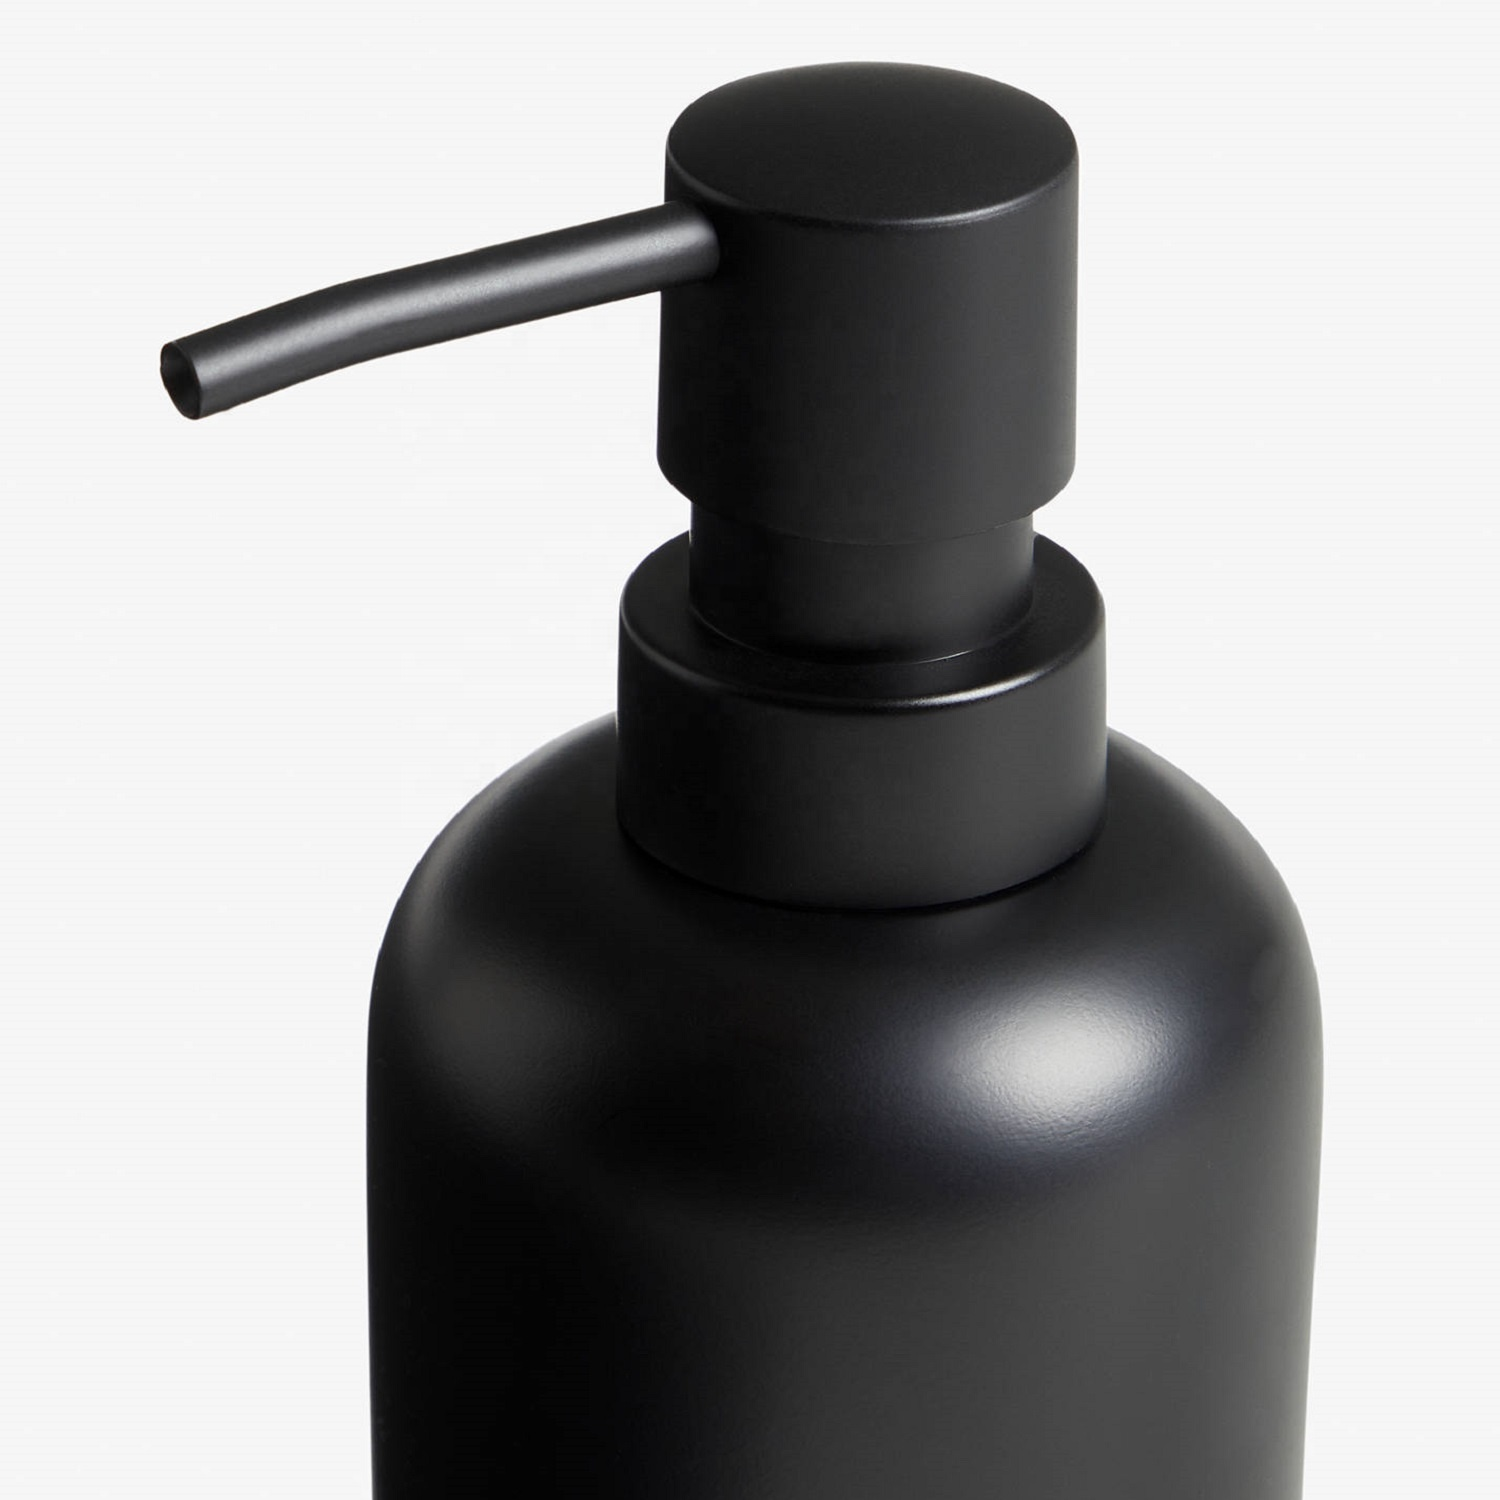 Luxury Matt Black Resin Bathroom Liquid Lotion Pumps